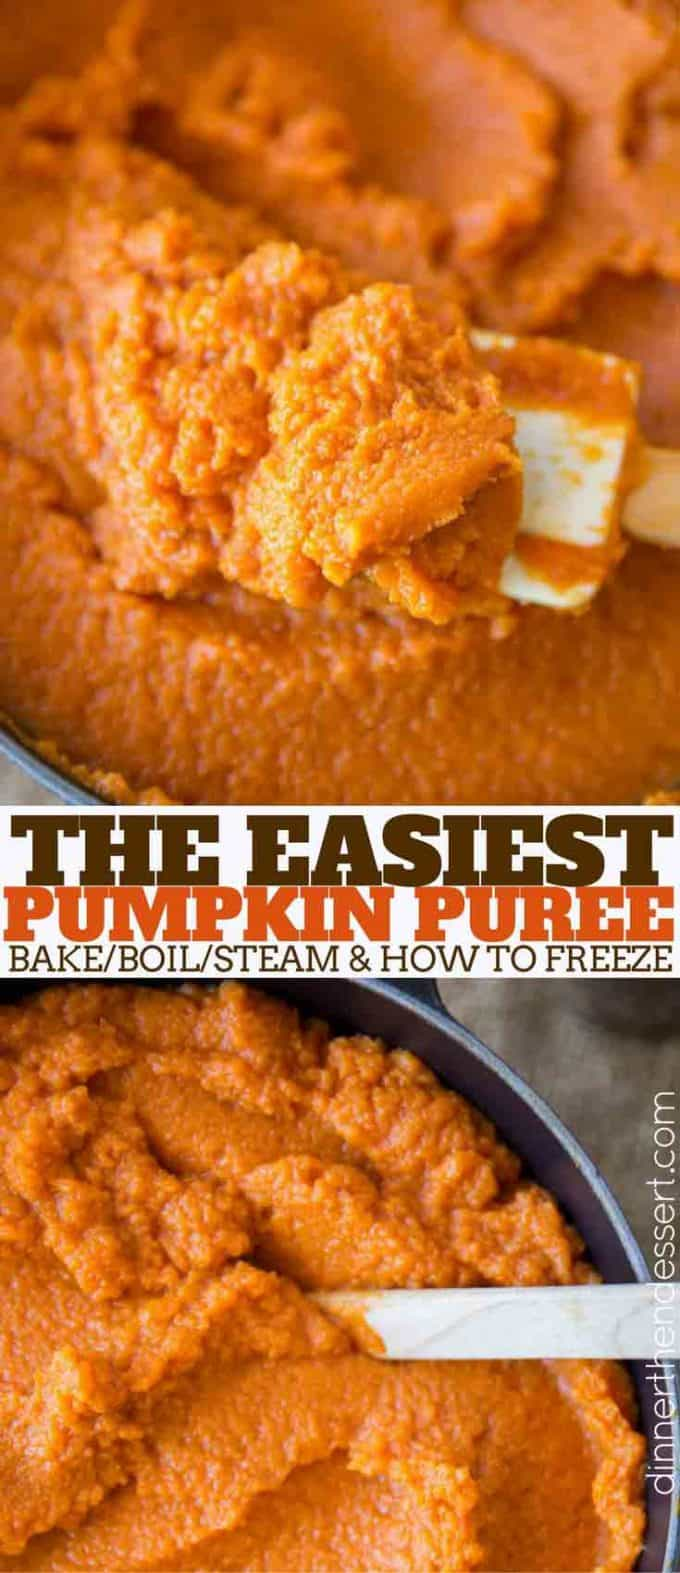 Homemade Pumpkin Puree is an easy way to use up all your Halloween pumpkins and it tastes so much better than canned pumpkin.